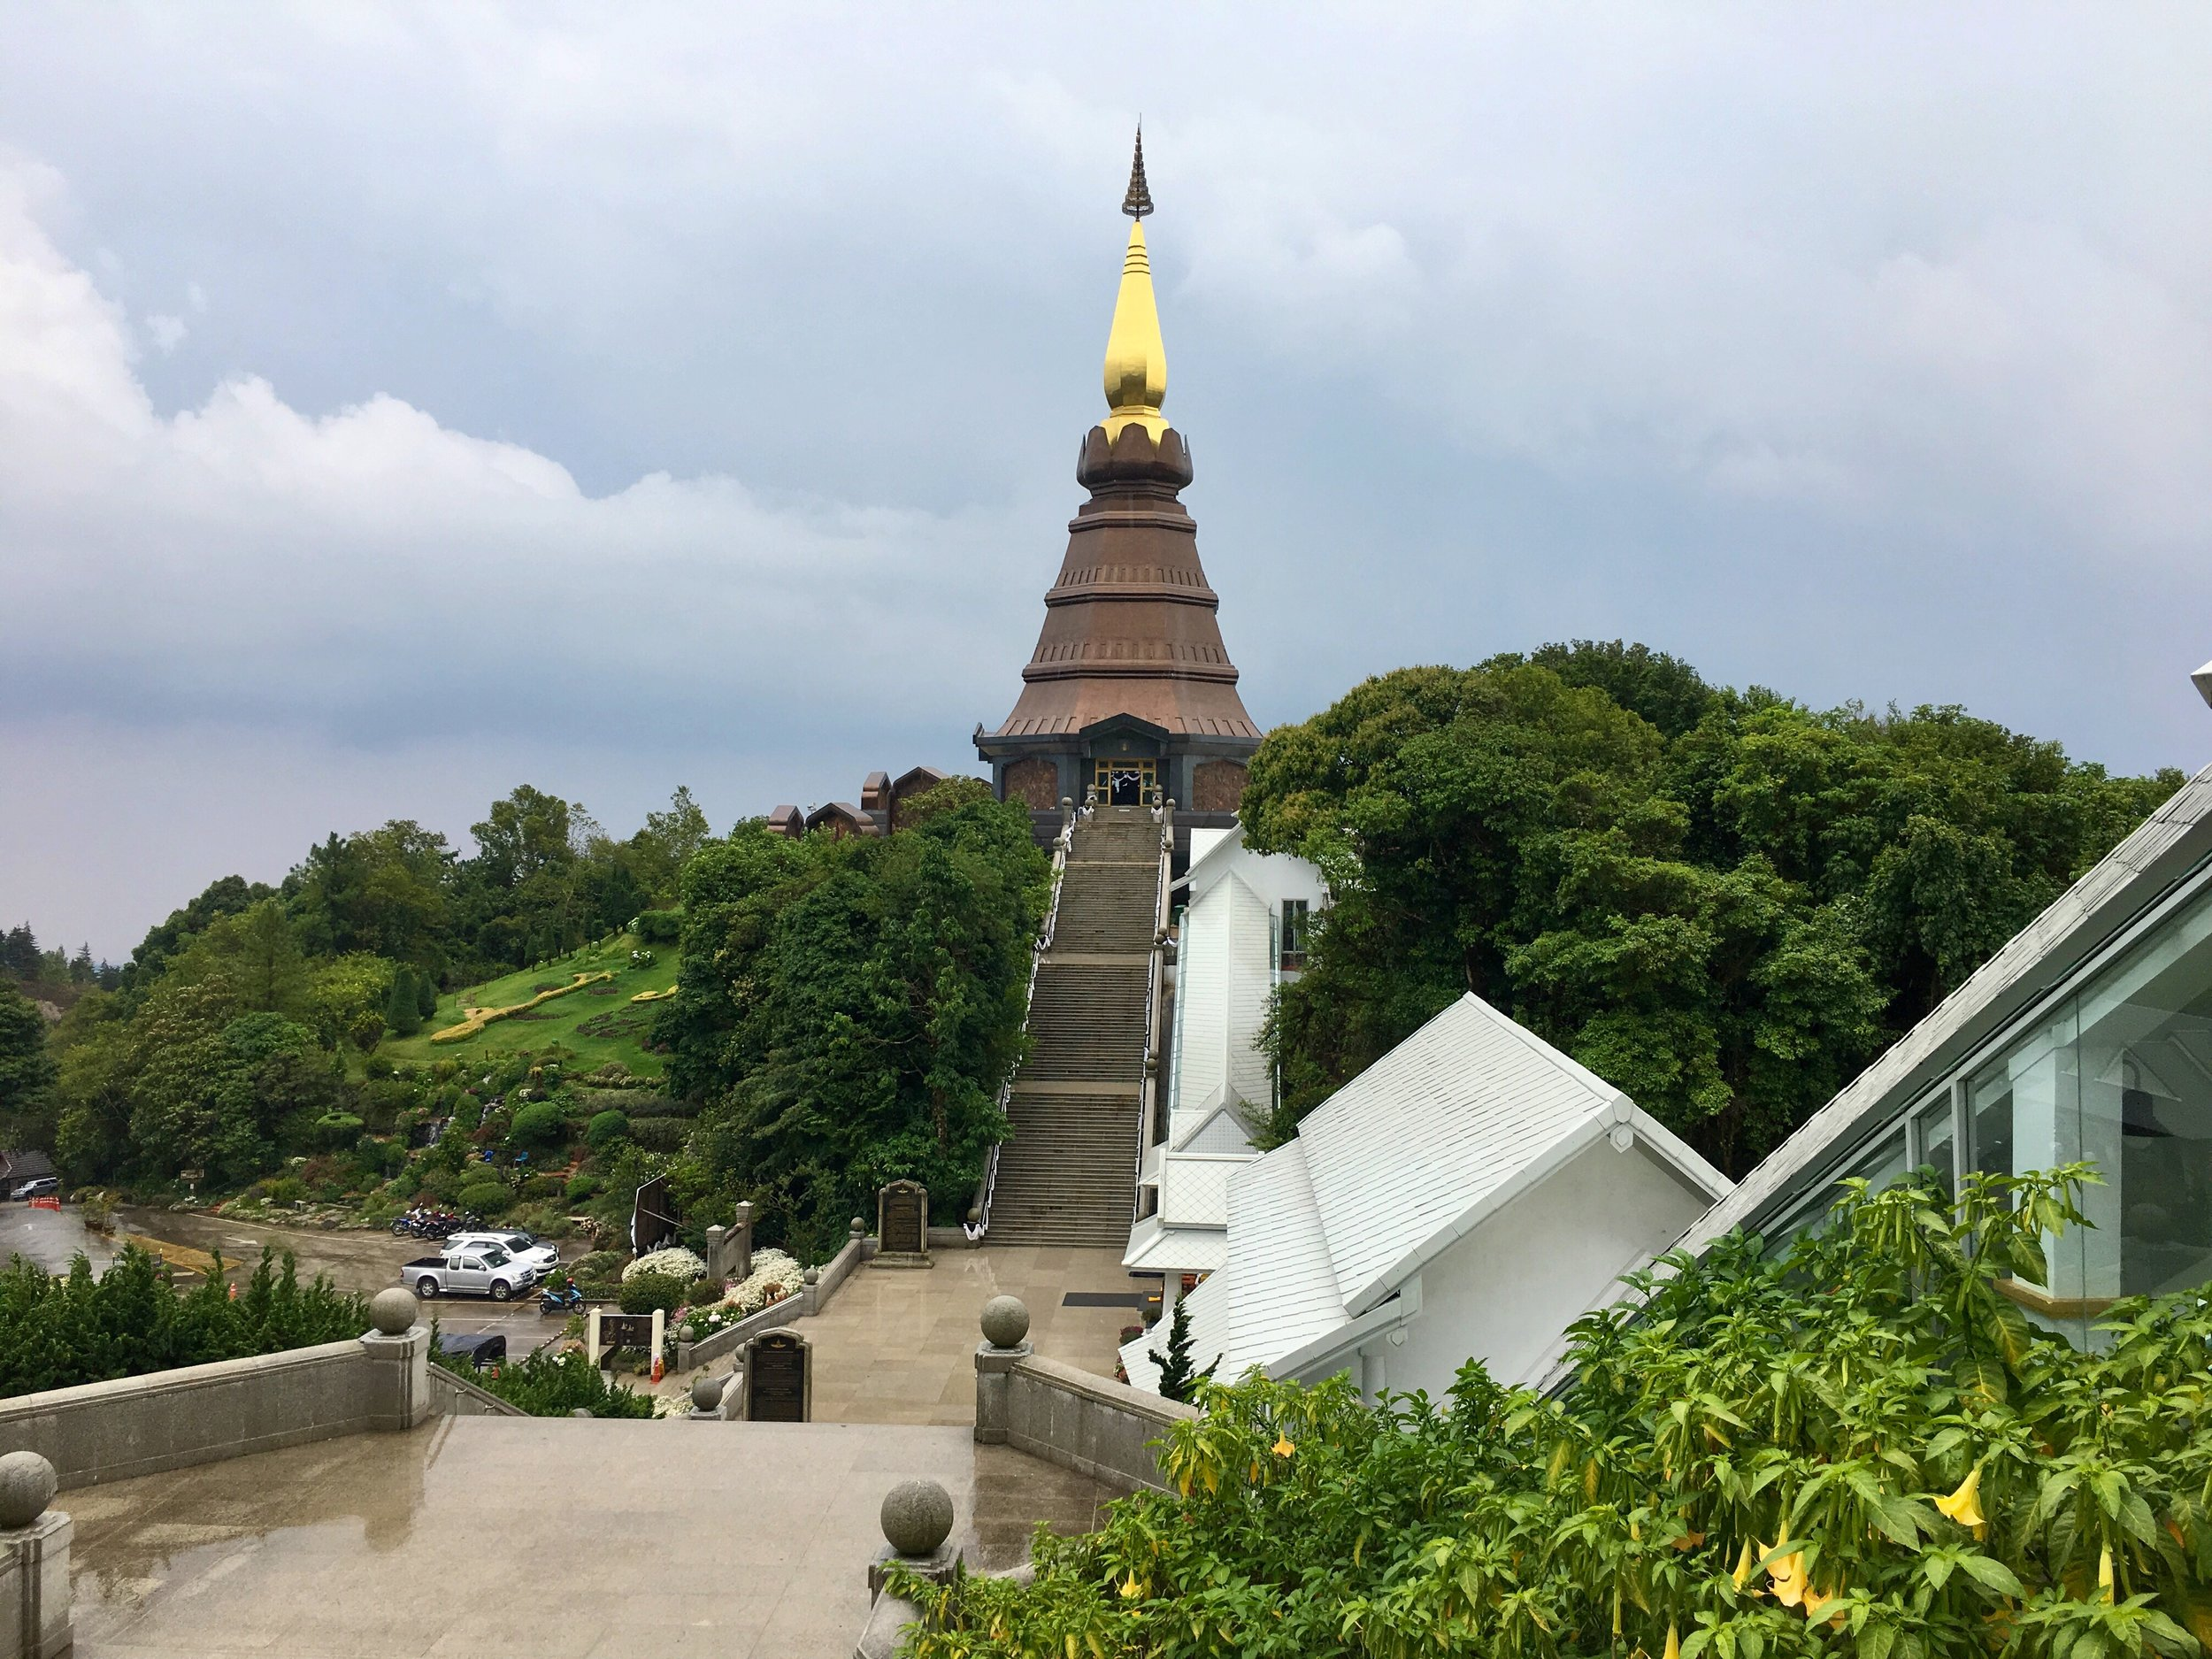 It started raining right as we got to the pagodas atop Doi Inthanon